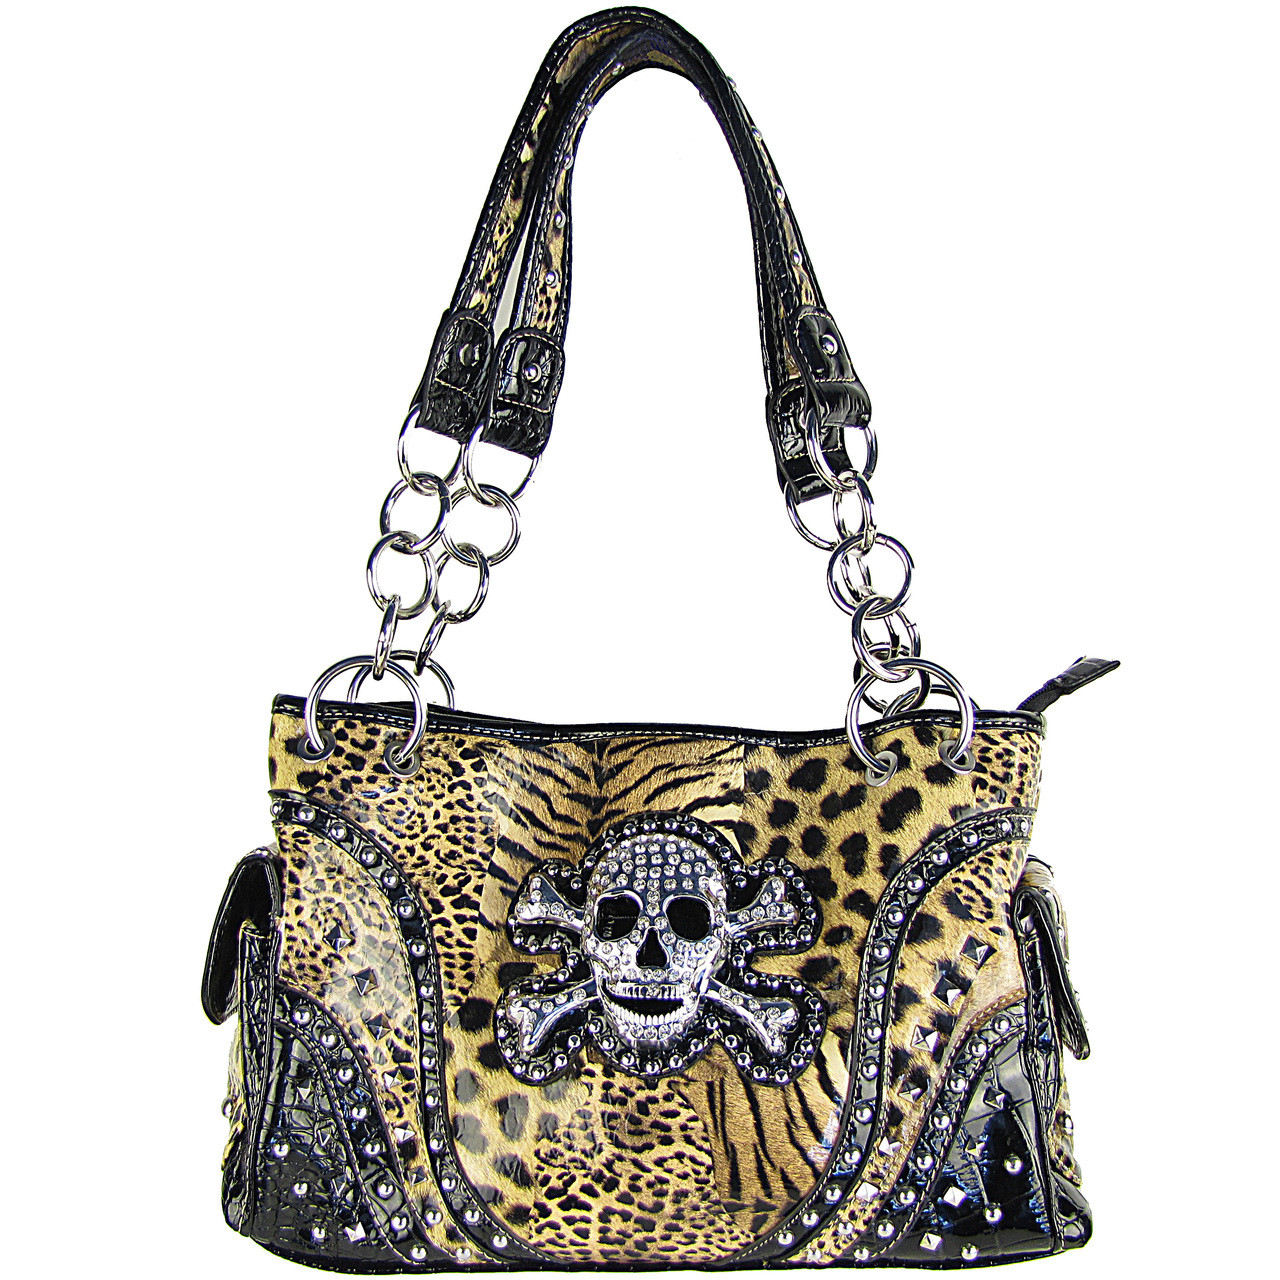 BROWN LEAPORD SKULL LOOK SHOULDER HANDBAG HB1-CHF0060BRN